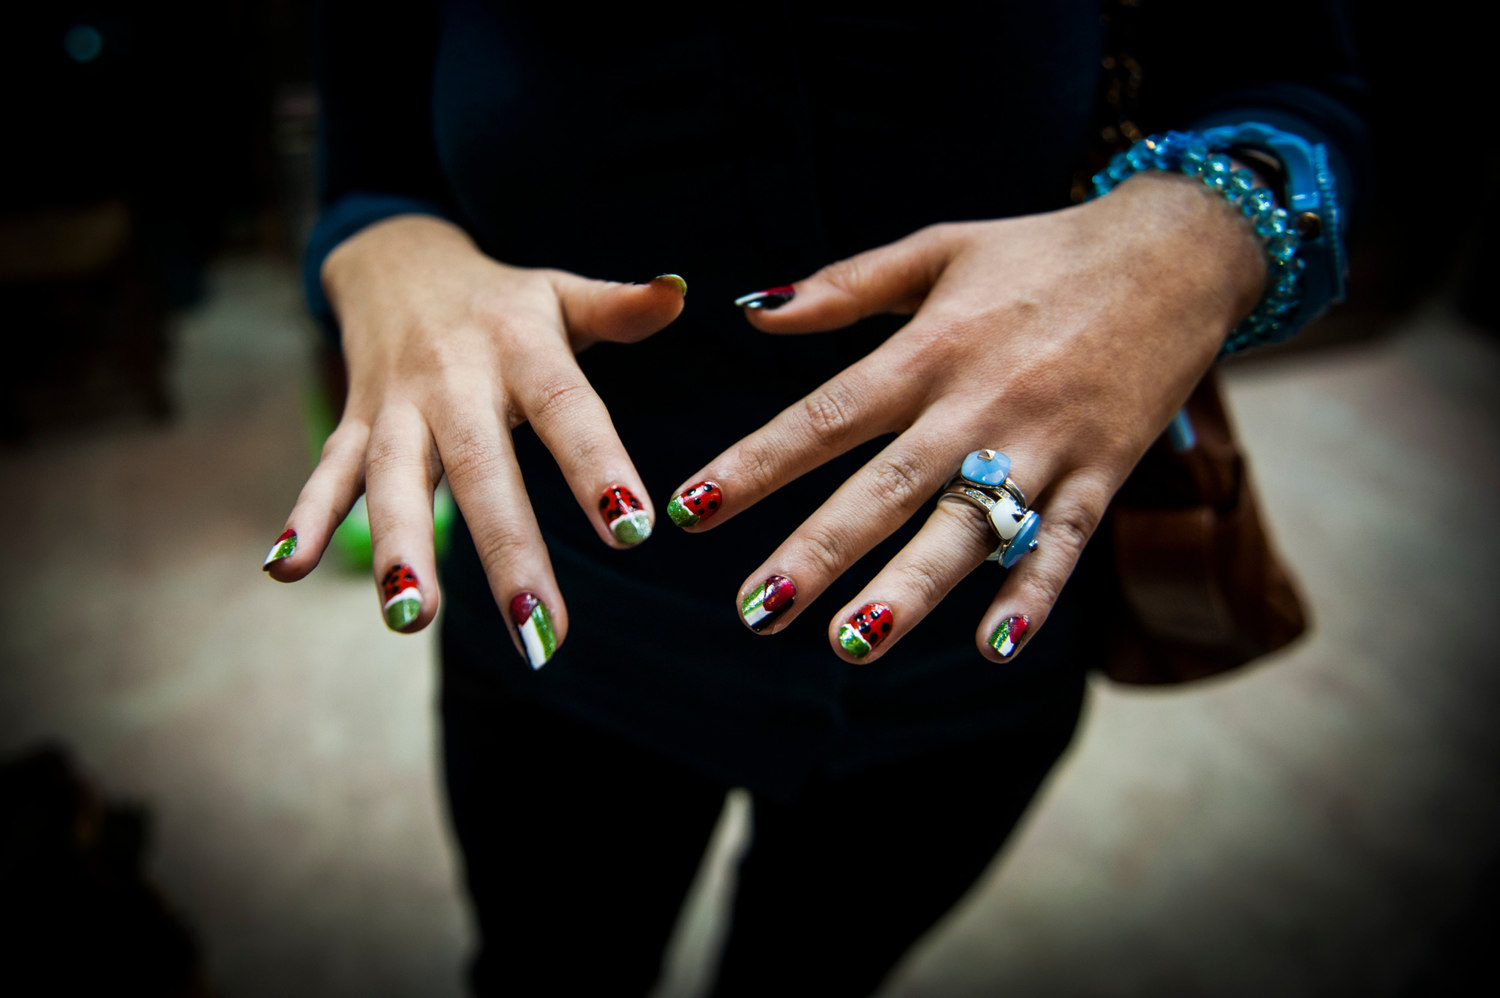 A girl shows off her Palestinian themed nails after a recent bombing campaign.